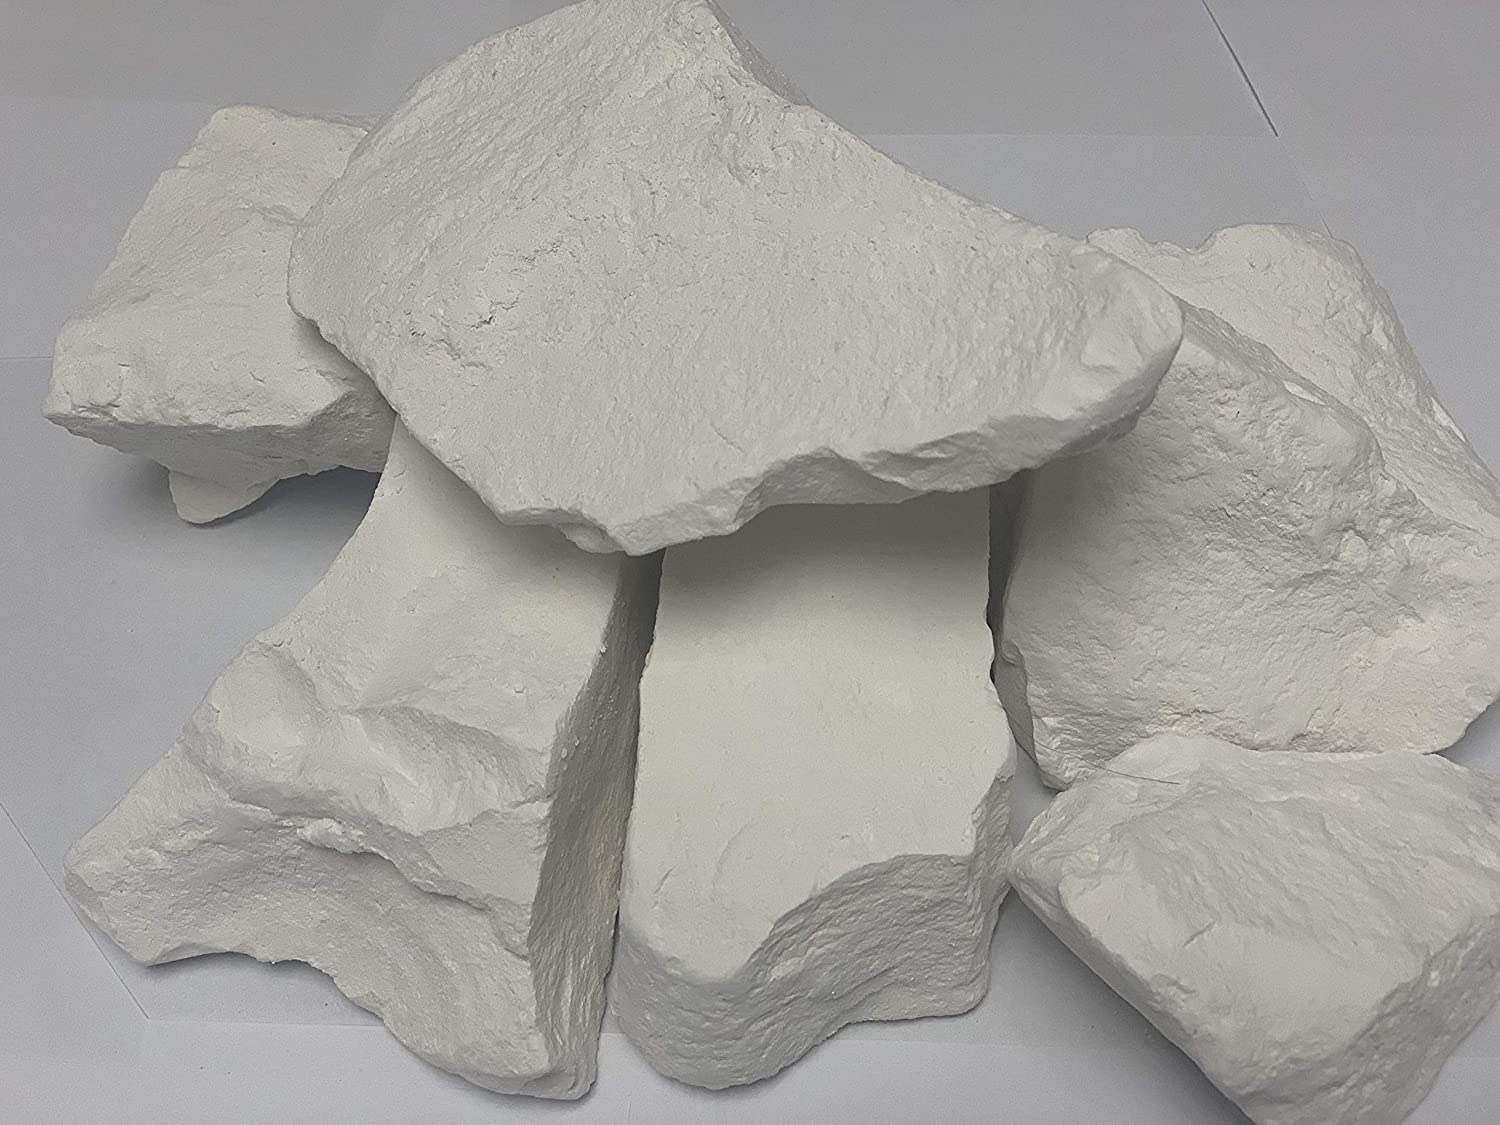 VALUYCHIK Opening large release sale edible Chalk Selling chunks lump for natural eating food